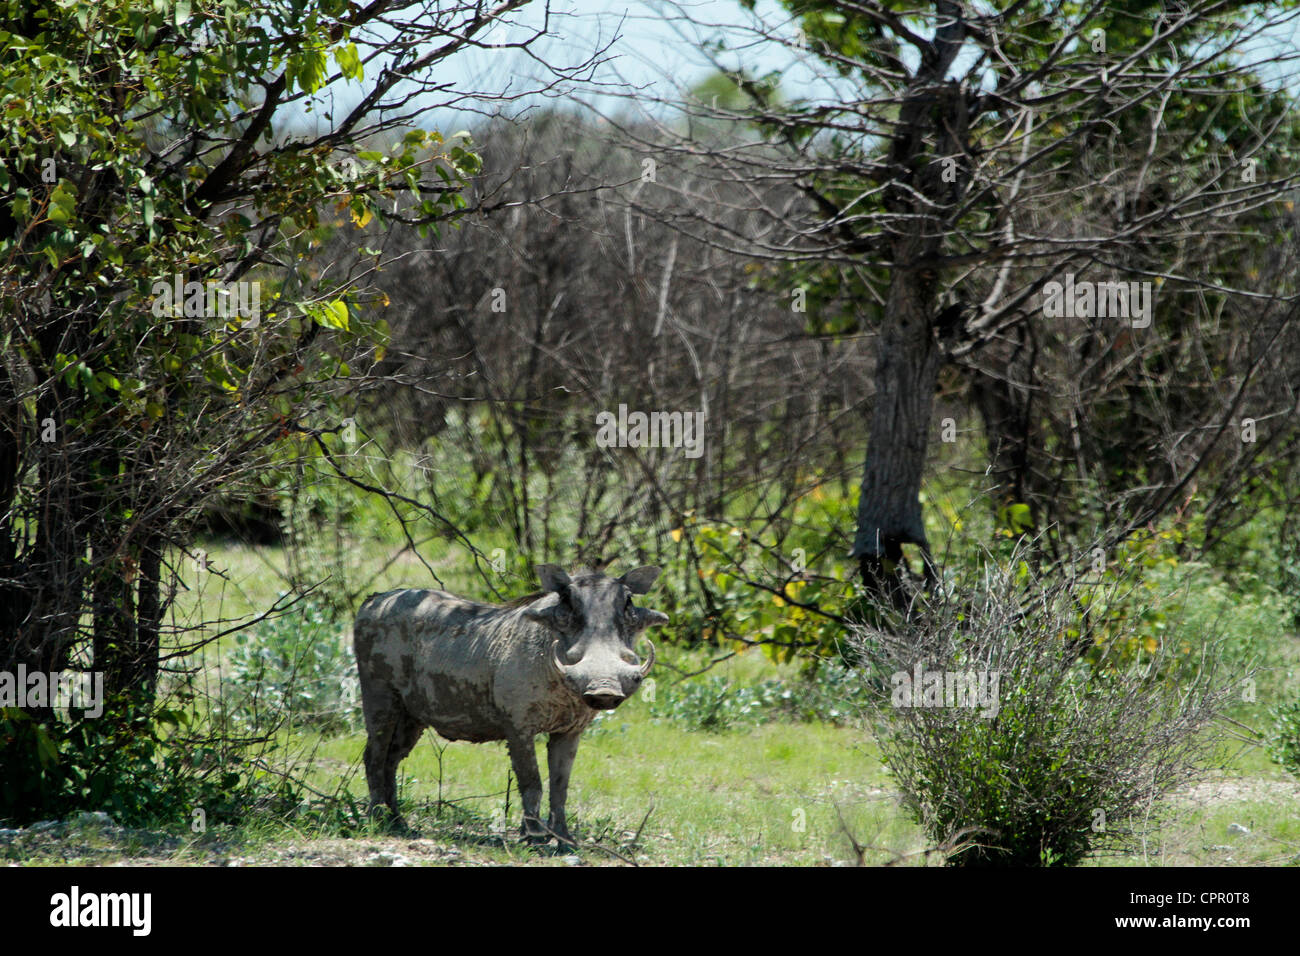 Normally warthogs disappear at first sign of human intrusion but this guy found a lovely patch of shade & was - Stock Image